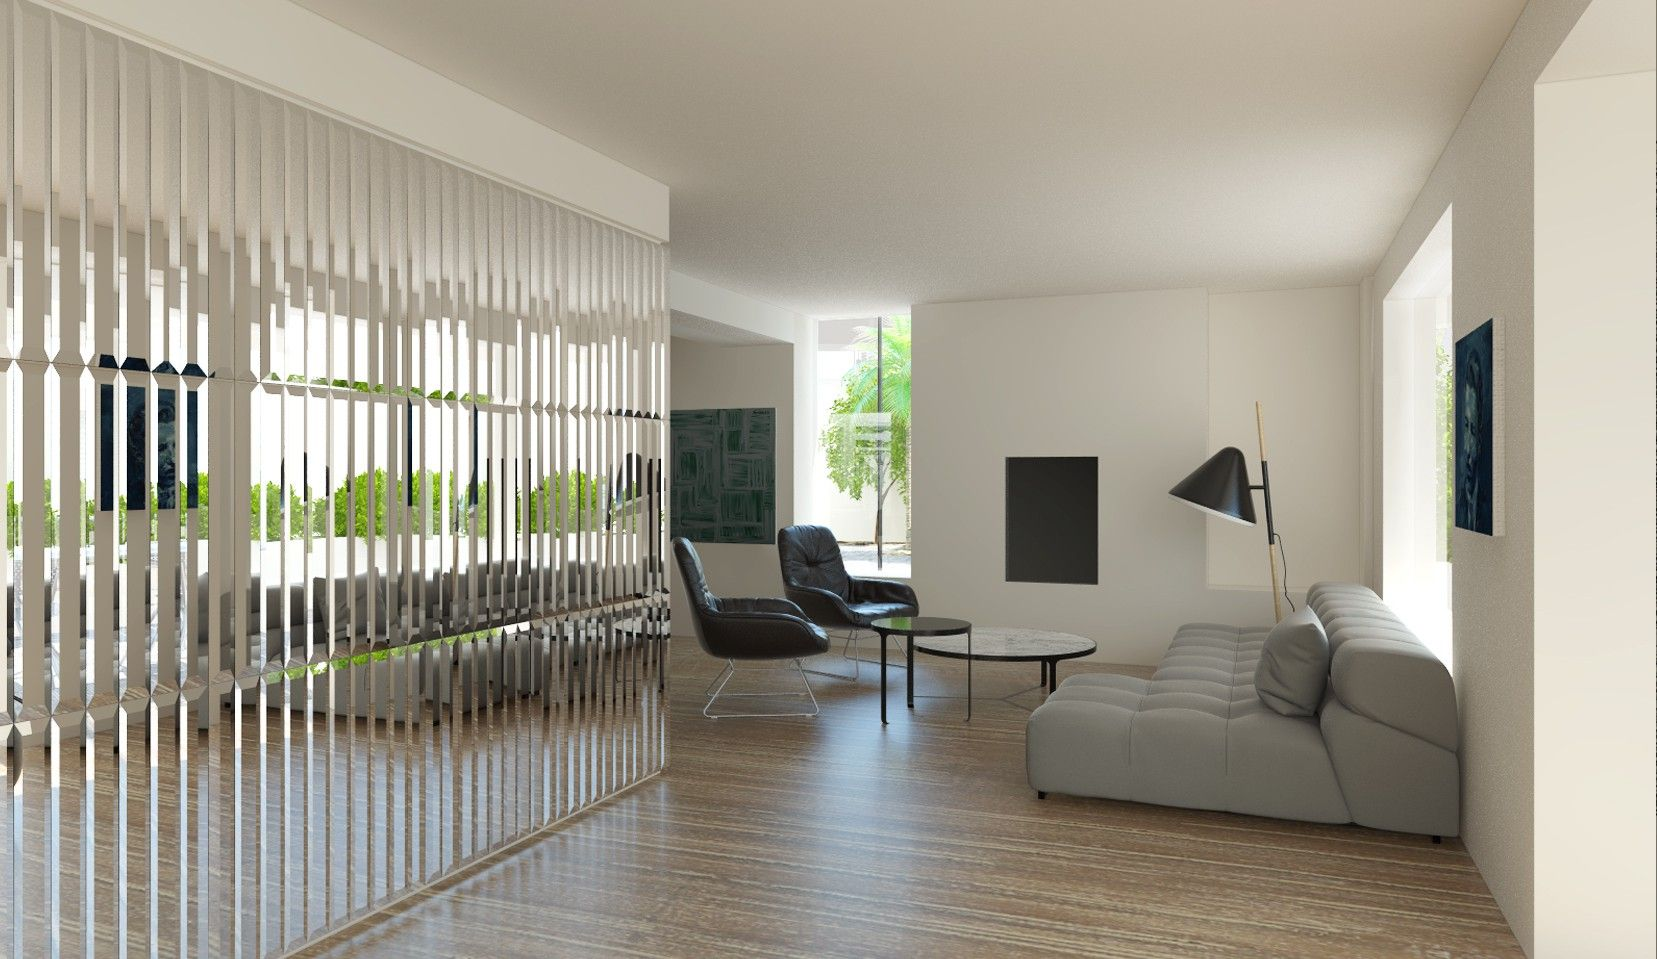 Small rooms living residential interior design hong kong interior designer find the best freelance interior designers expertise in small space design at